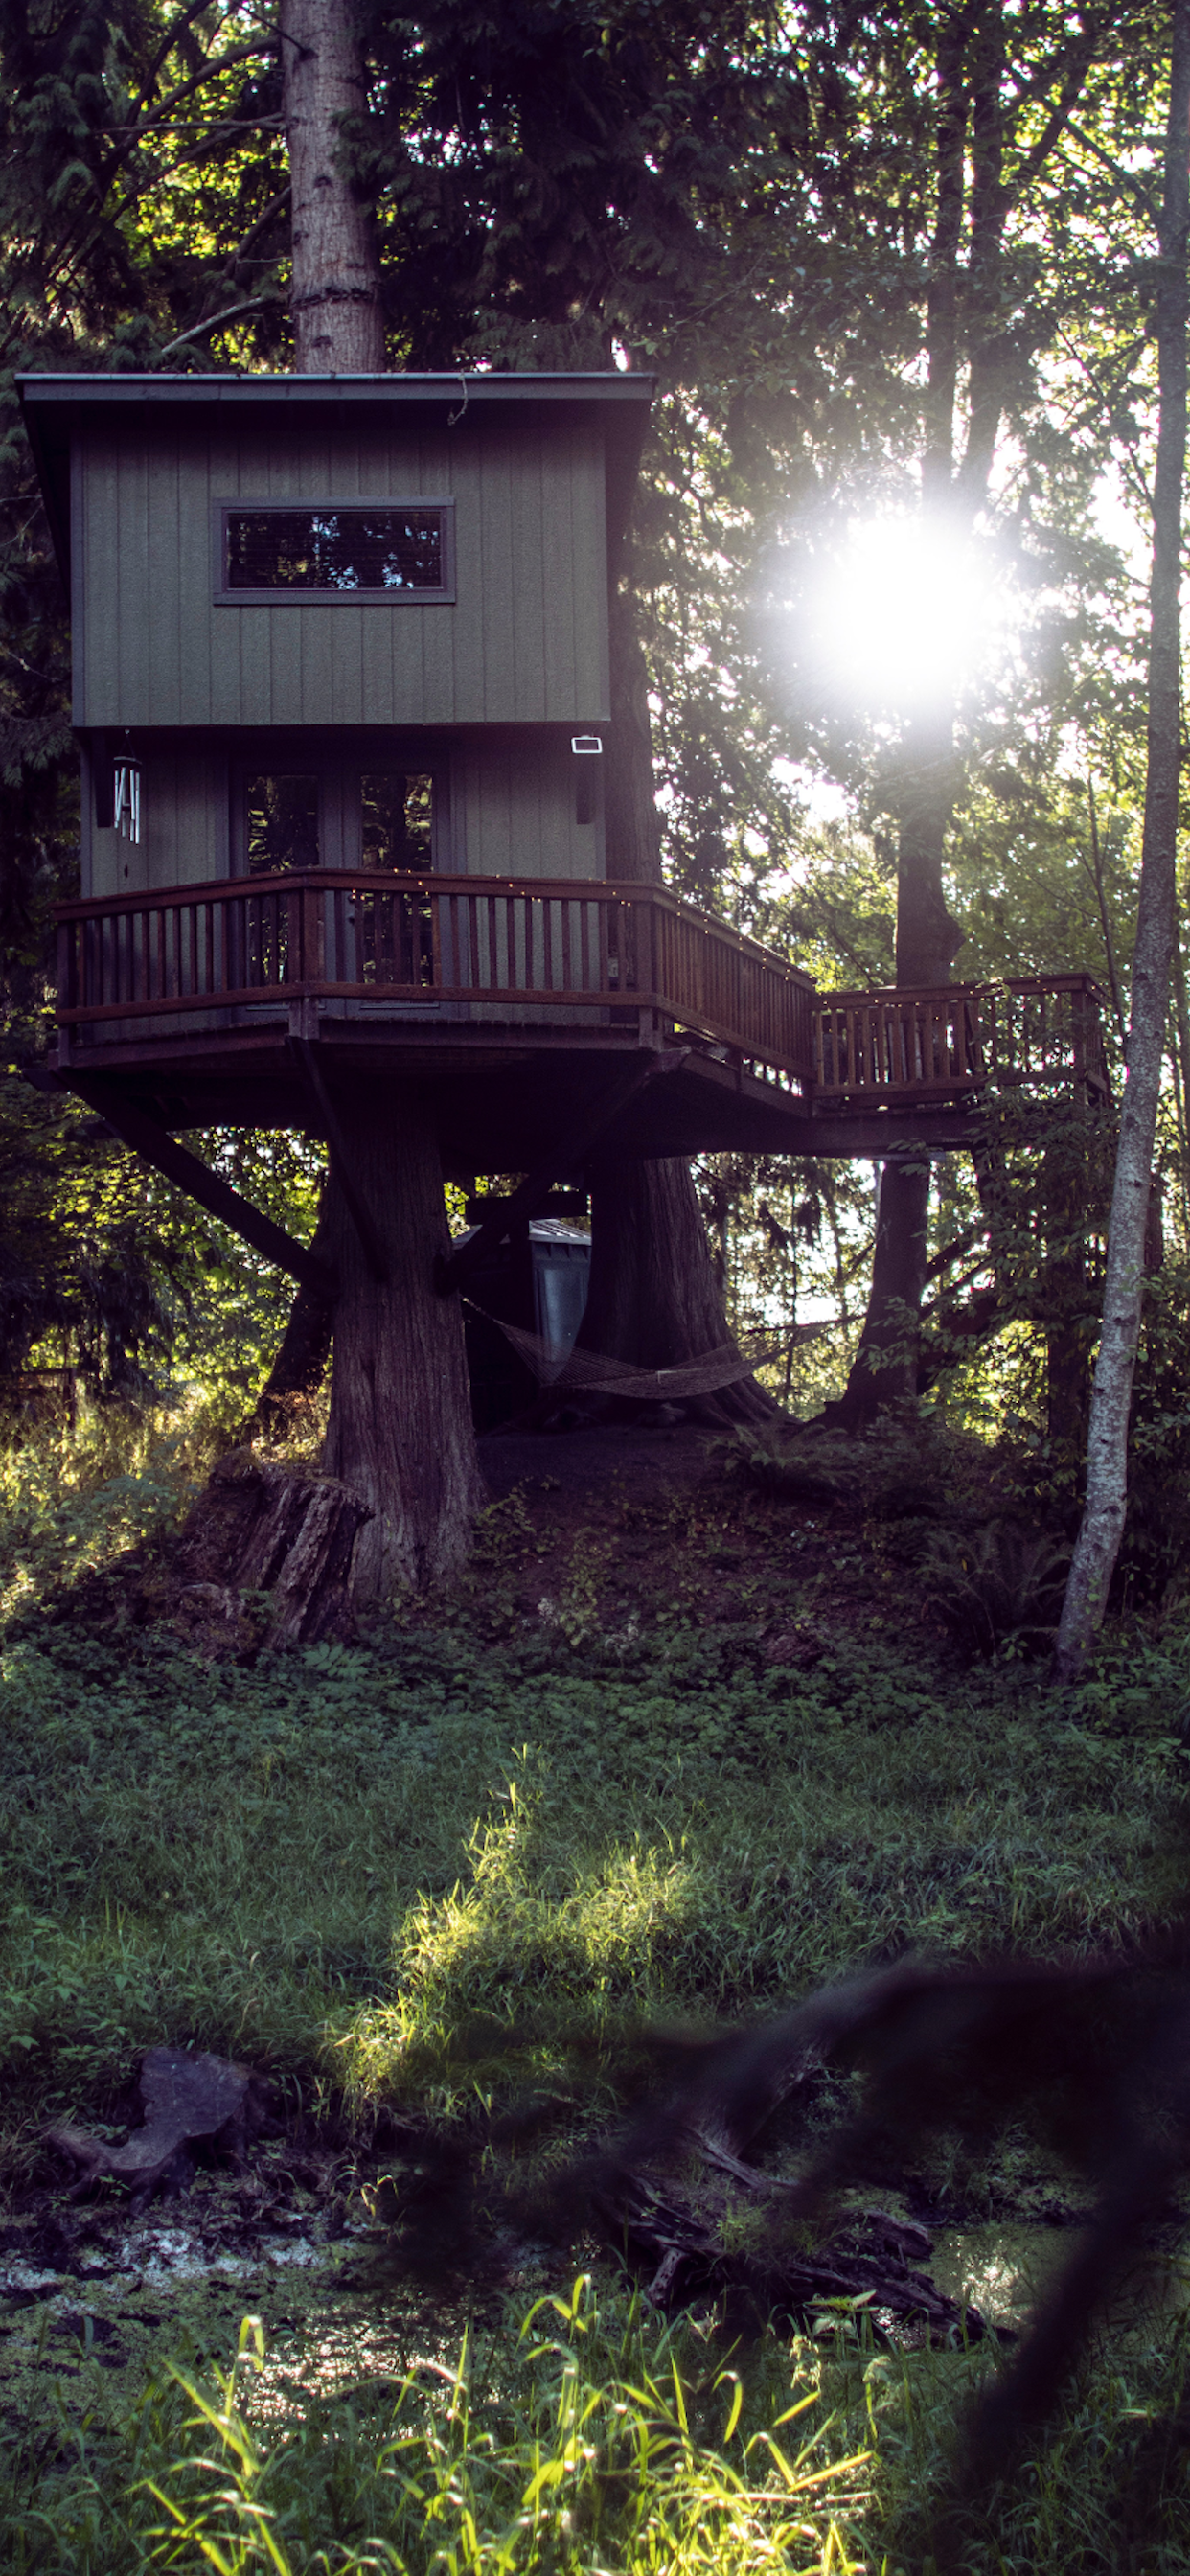 iPhone wallpapers treehouse olympia usa Fonds d'écran iPhone du 04/12/2019